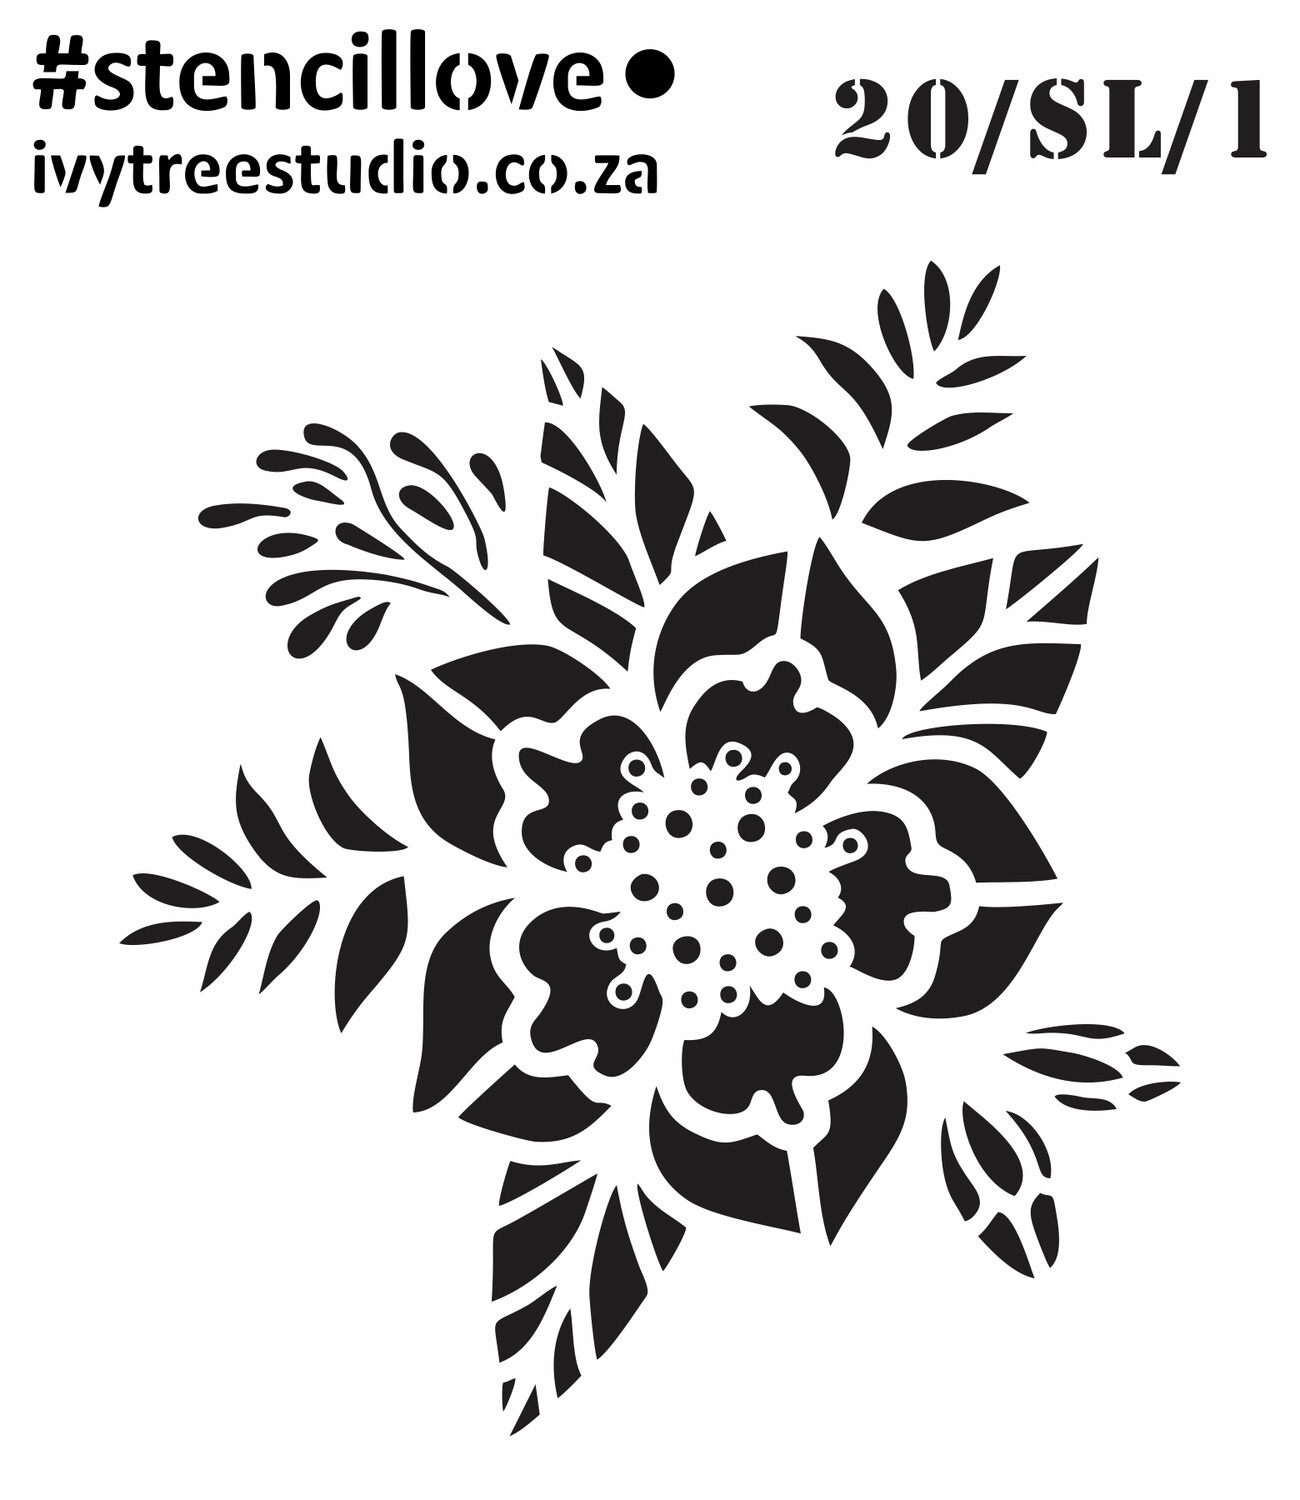 AW/SL/20 - #StencilLove - Ivytree Studio 2020 Stencils (Pre-Order) See Gallery and Options Menu (New designs added) - Place your order before 7 August 2020! - Physical product - needs shipping